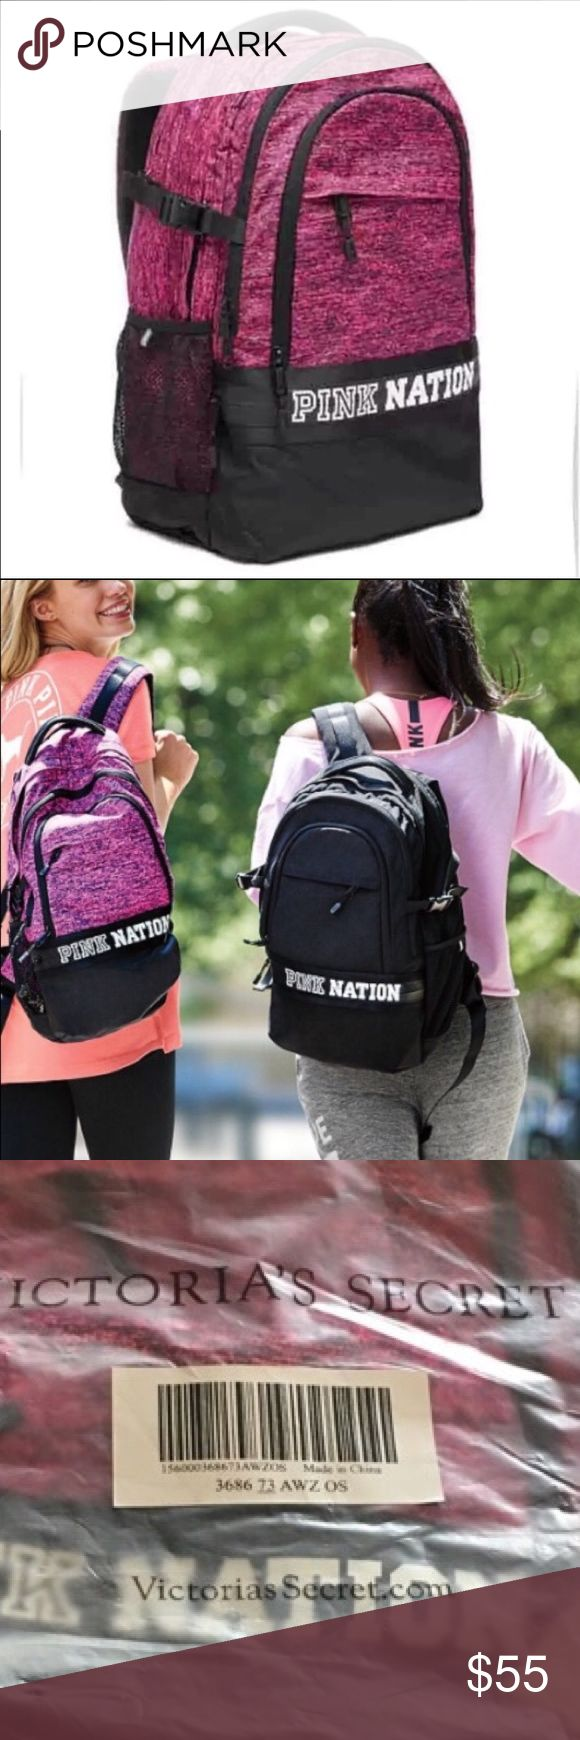 🌟BRAND NEW🌟 PINK NATION COLLEGIATE BACKPACK Brand New  Authentic  No Tags Inside Online Packaging  Fees Included in price  Look at pictures please If you need additional pictures let me know 🚫NO TRADES🚫 🚫No Shipping on the Weekends🚫 Serious Buyers Only  THANK YOU PINK Victoria's Secret Bags Backpacks